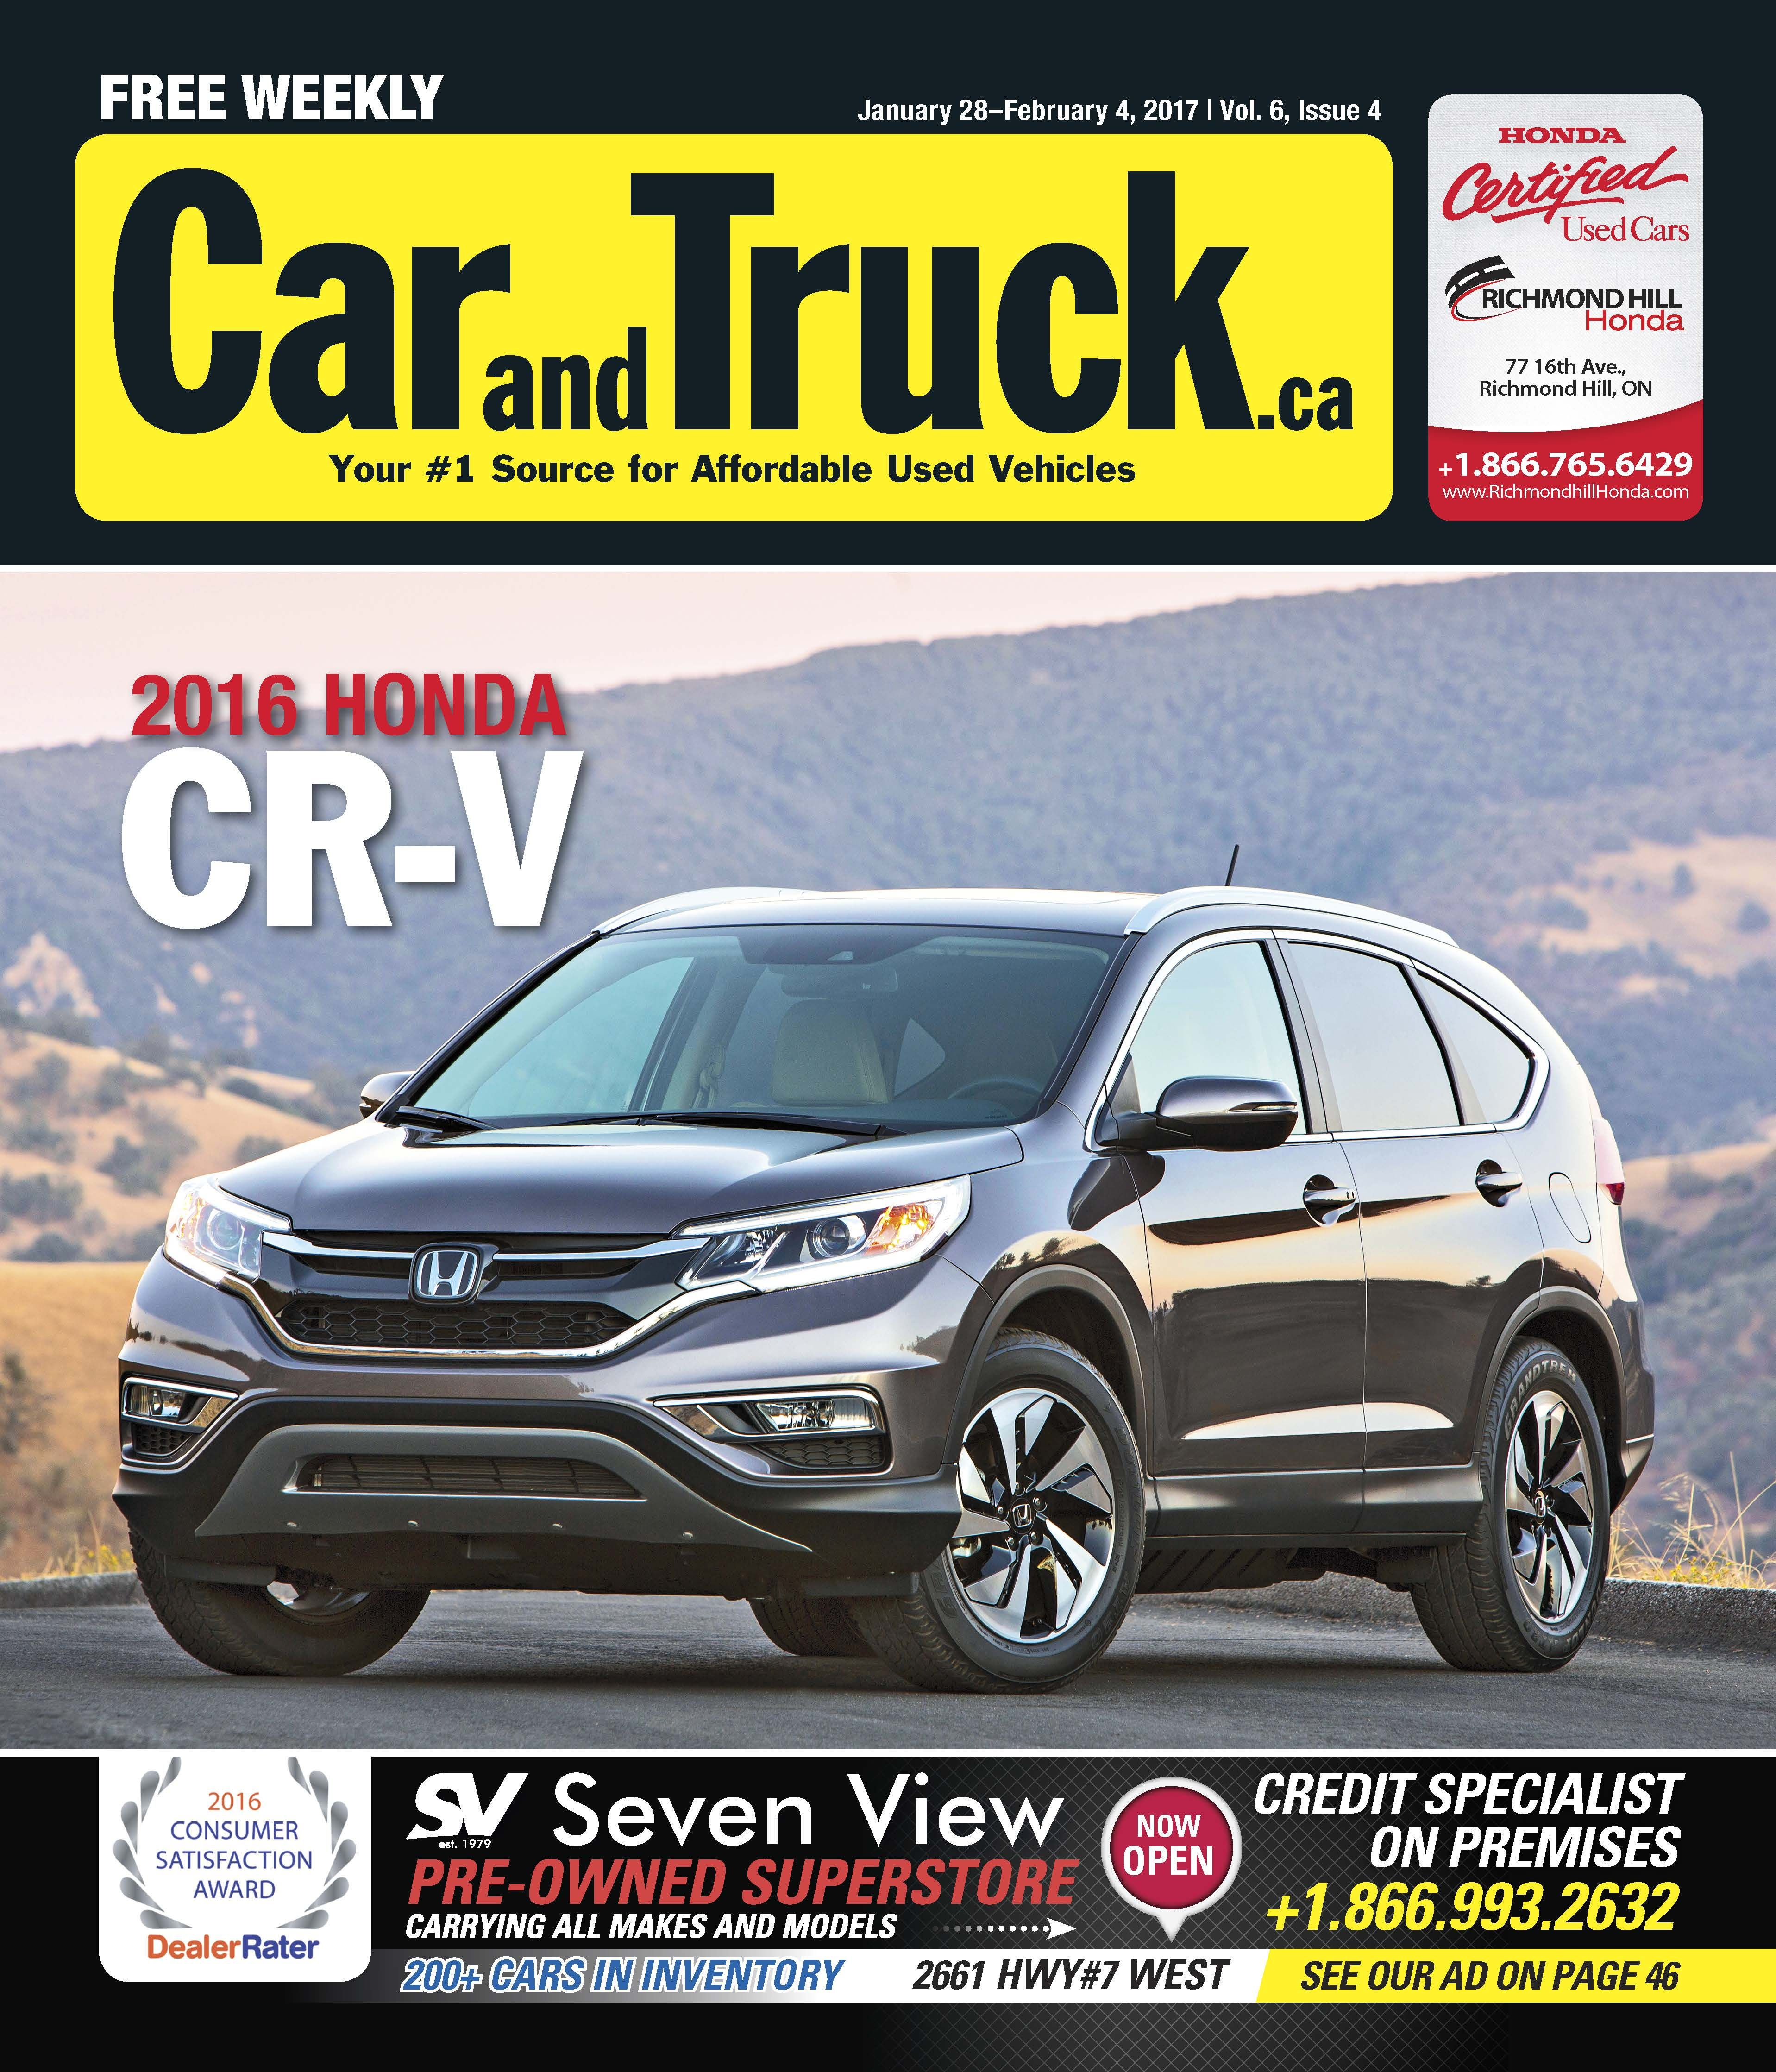 Check out the wheels and deals in this weeks free issue of